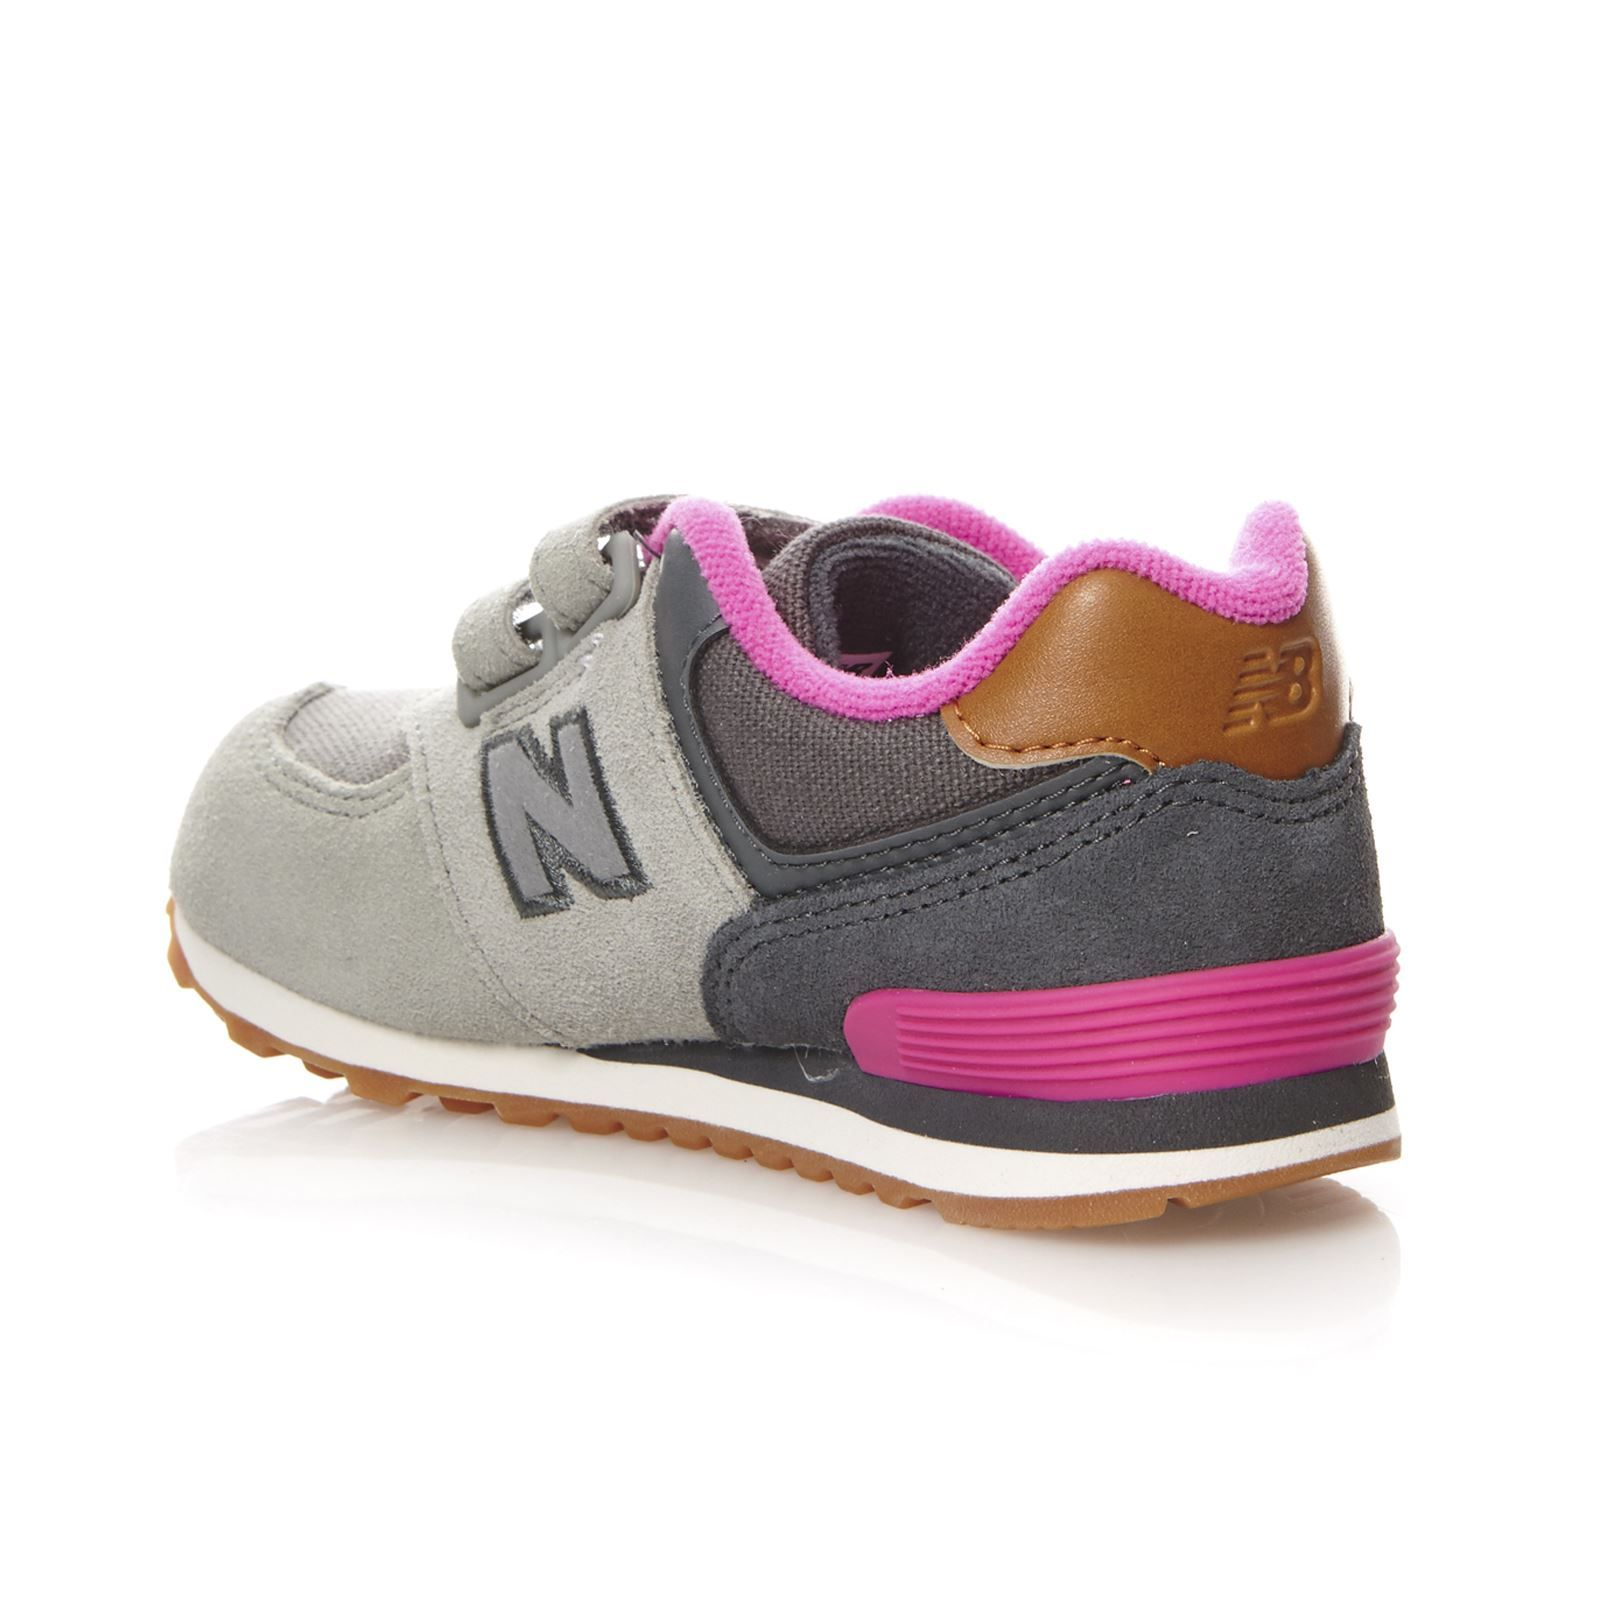 new balance kv574 turnschuhe sneakers grau brandalley. Black Bedroom Furniture Sets. Home Design Ideas